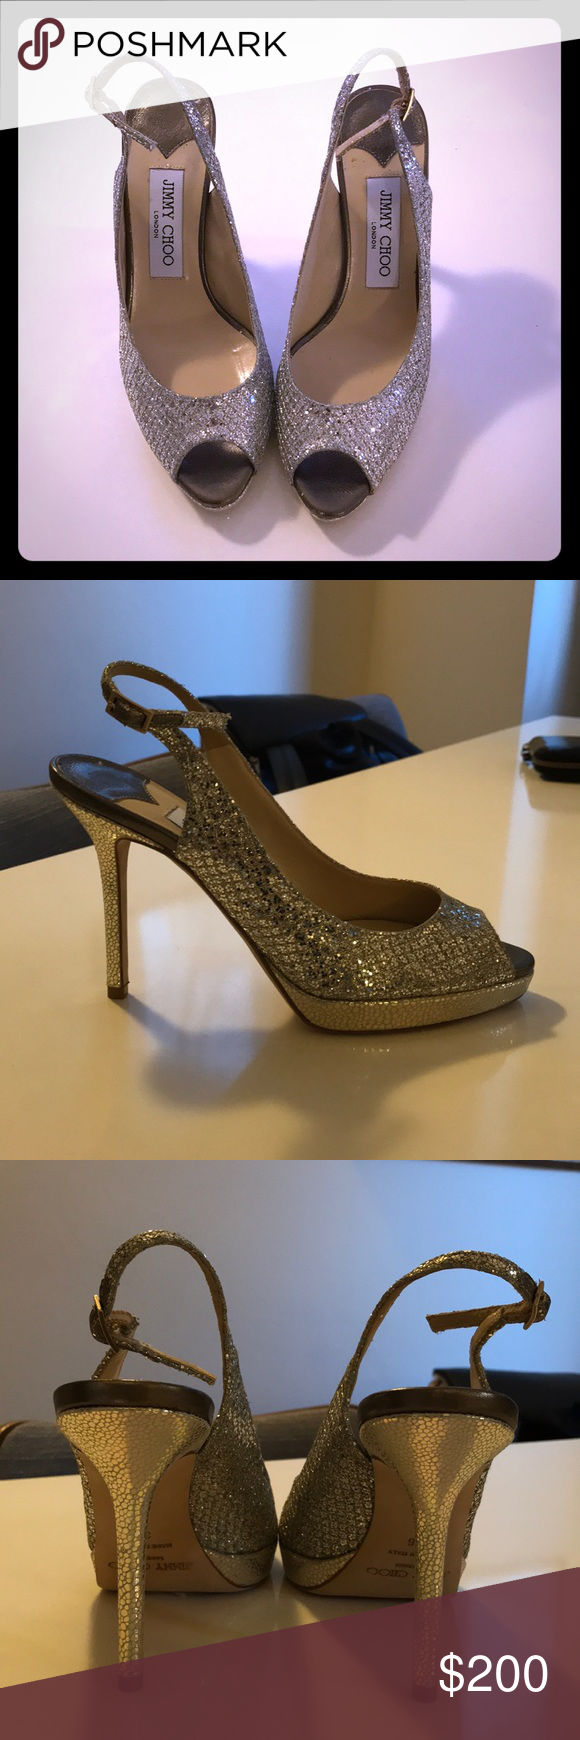 NWT Jimmy Choo Silver Slingbacks Beautiful Jimmy Choo silver slingbacks - with tags, dustbag, and box. Never worn outdoors (only inside to try on). Perfect for party, evening or bridal. Willing to negotiate price! Jimmy Choo Shoes Heels